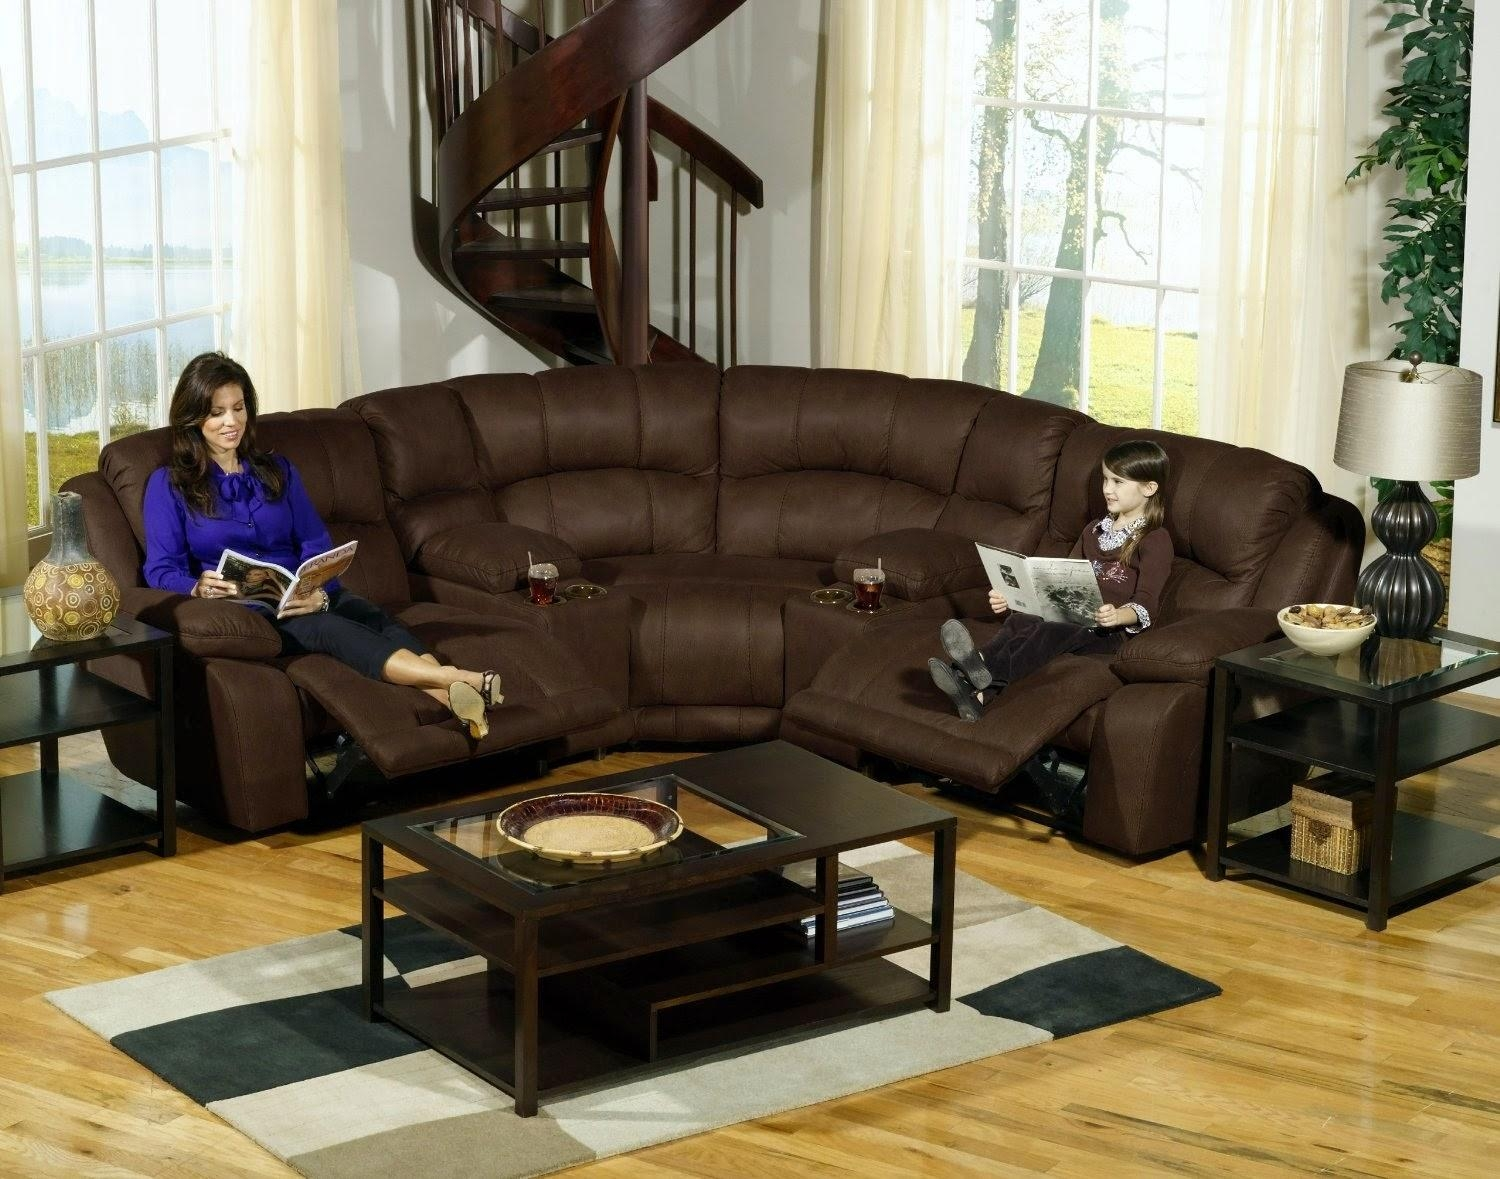 Sofas Center : Used Sectional Sofas For Saleowner Utah Wv On Inside Used Sectionals (View 12 of 20)